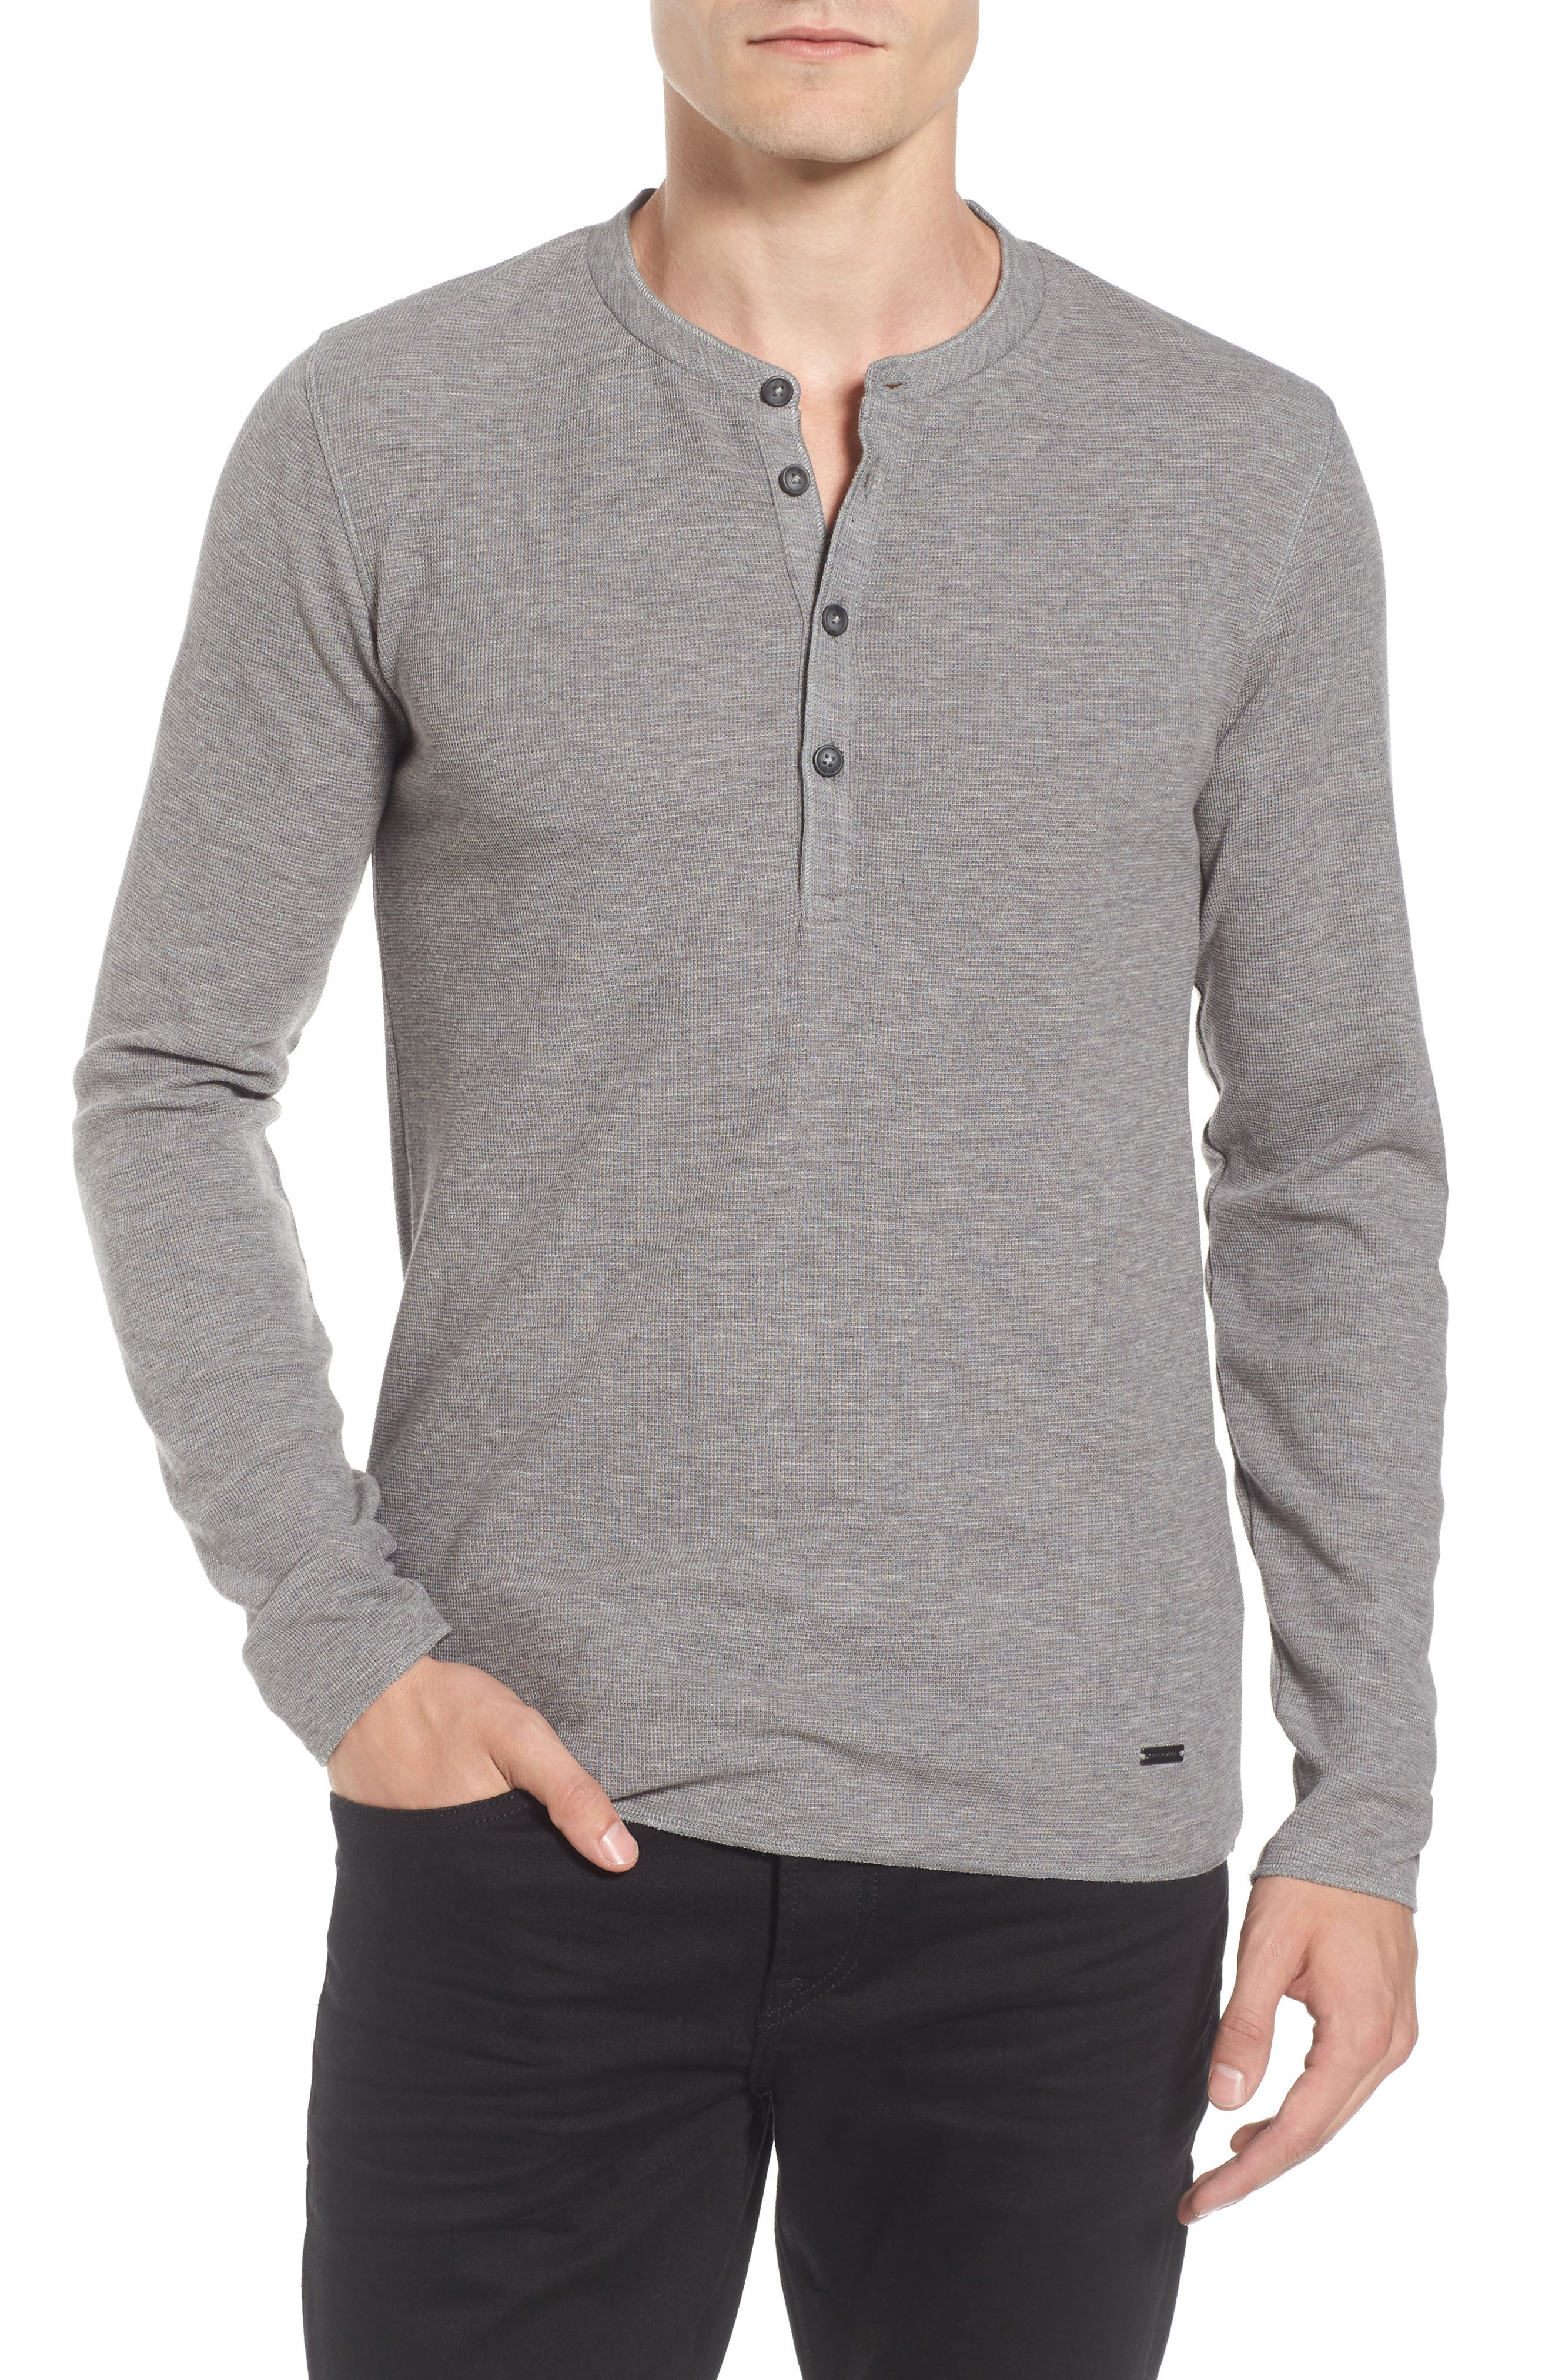 Topsider Thermal Henley,                             Main thumbnail 1, color,                             Light Pastel/ Grey